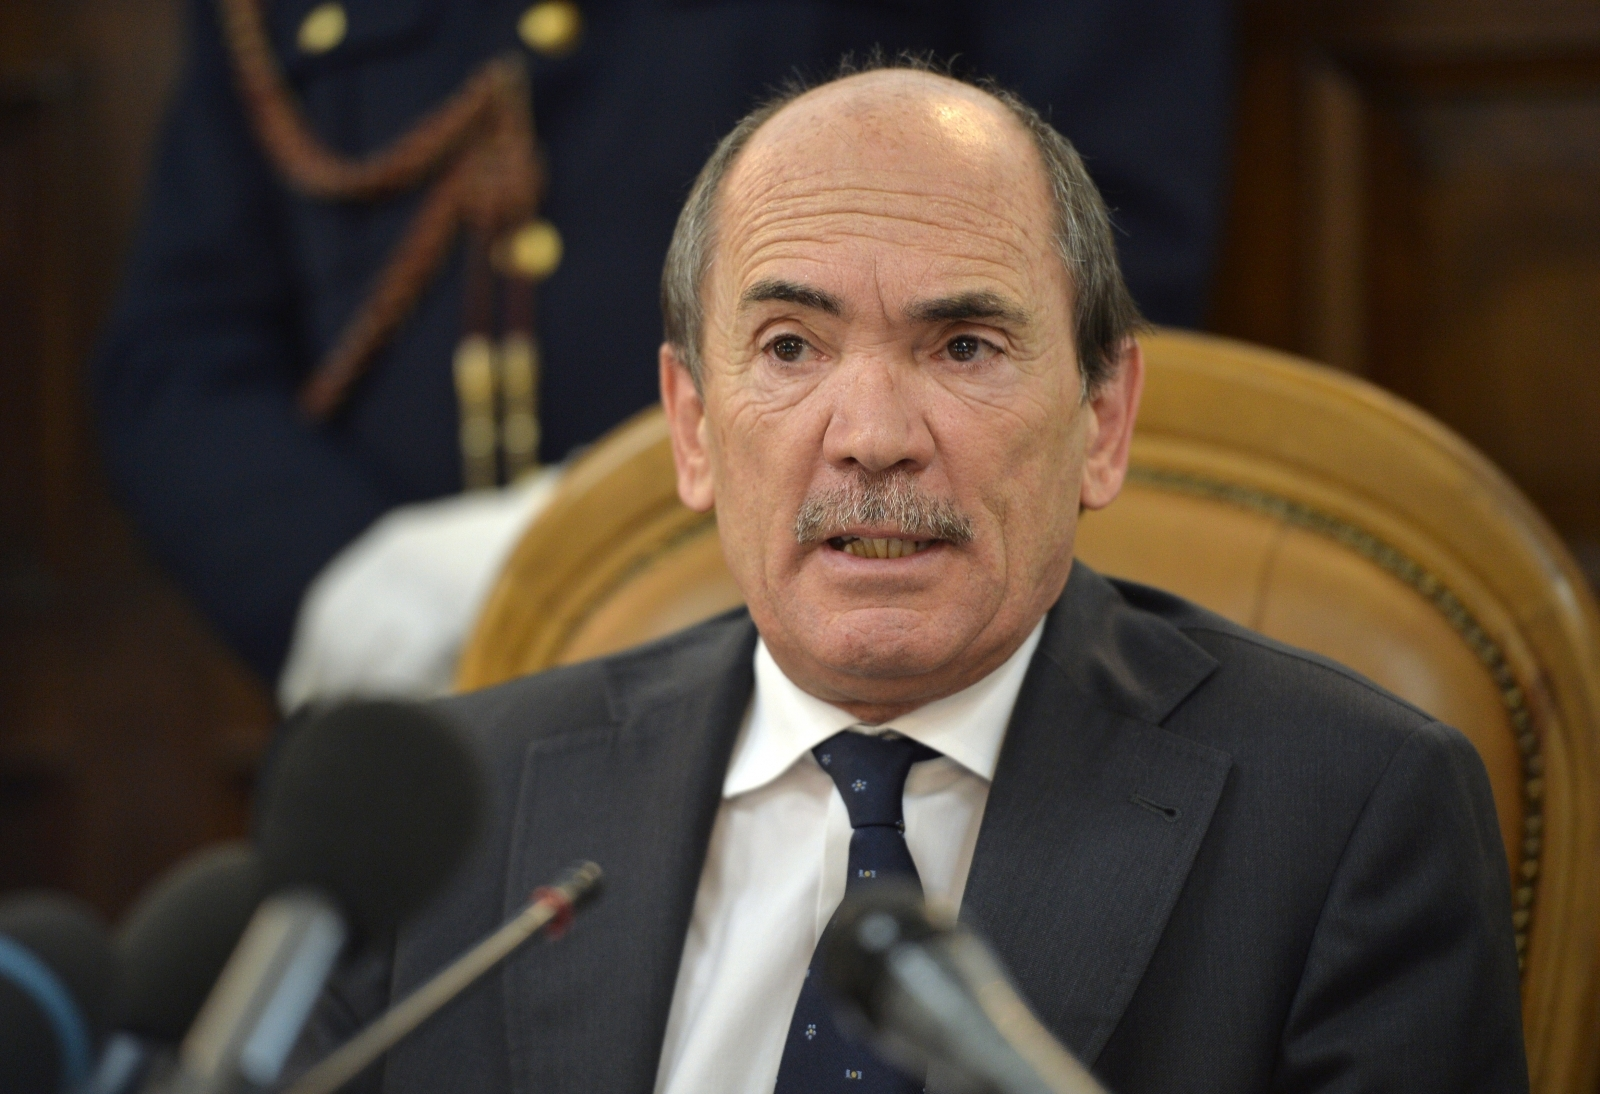 Italy's chief anti-Mafia prosecutor Federico Cafiero de Raho said police had swooped on 33 suspected Chinese gang members involved in gambling, prostitution, drugs and the transport of Chinese goods across Europe